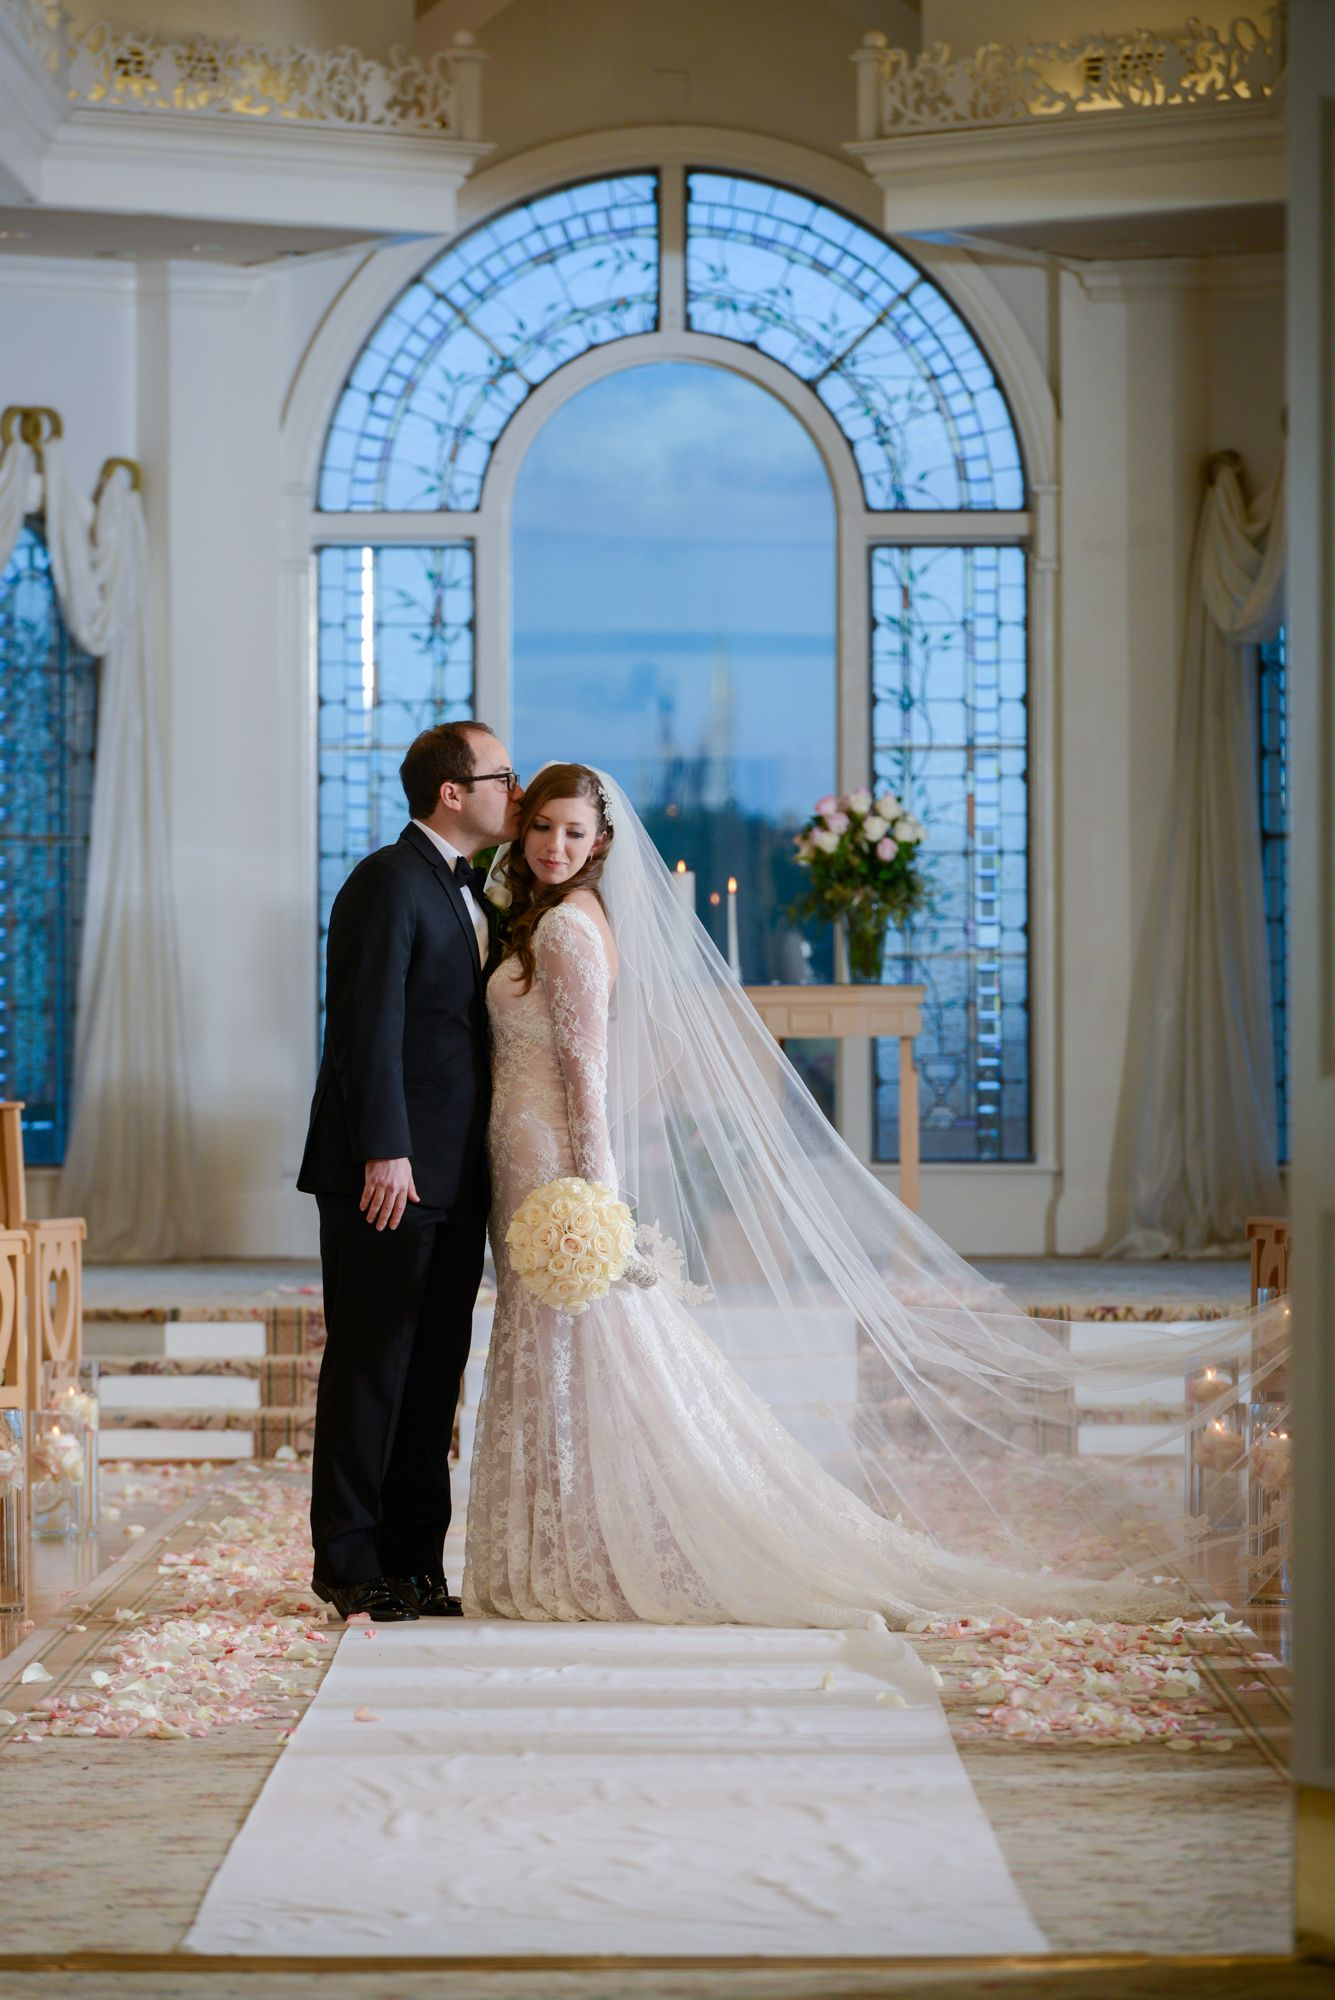 Jackie Michaels Beautiful Portrait At Disneys Wedding Pavilion After Their Escape Collection Ceremony